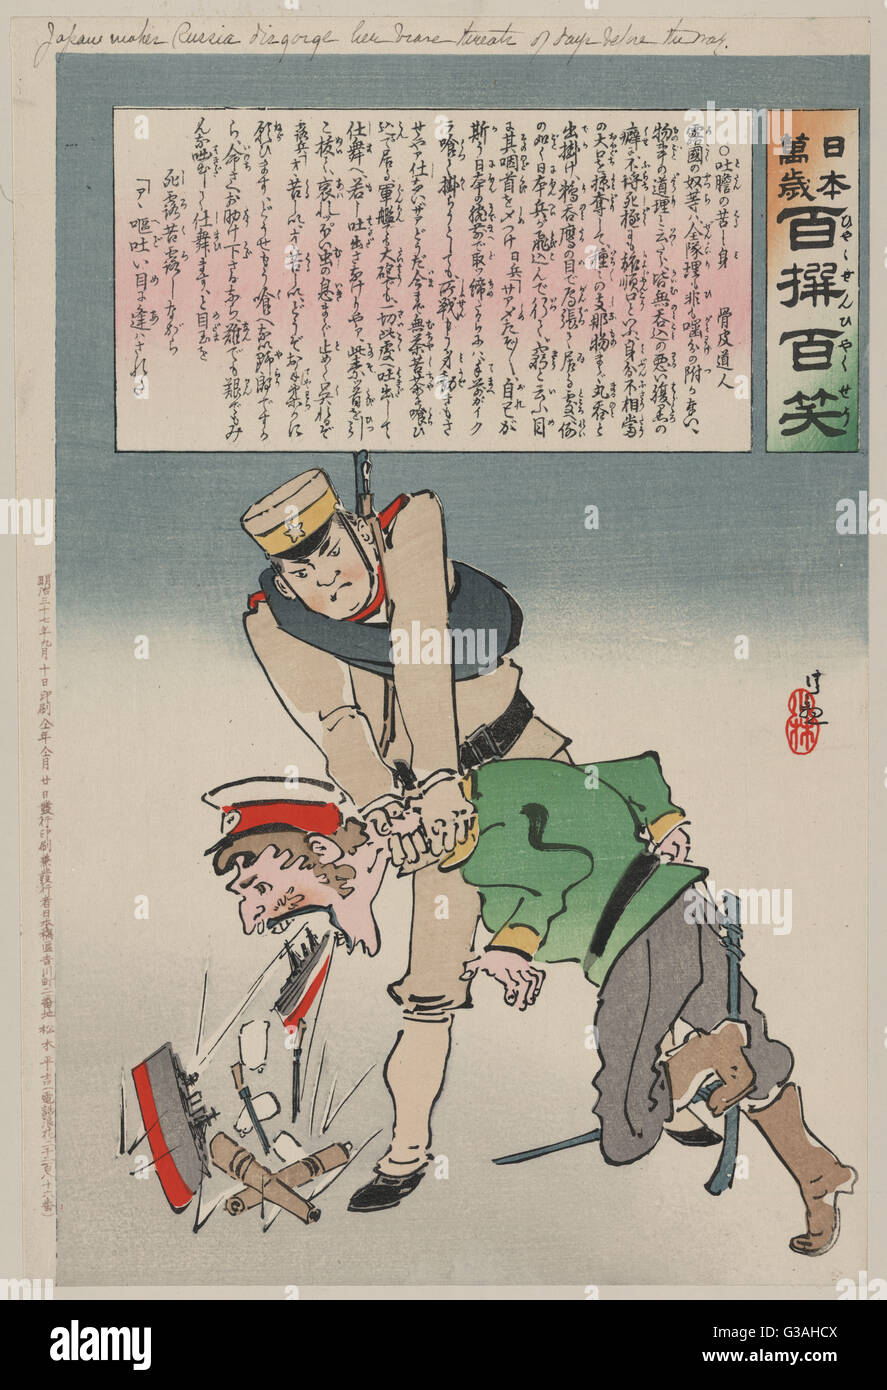 Japan makes Russia disgorge her brave threats of days before the war. Print shows a Japanese soldier chocking a - Stock Image